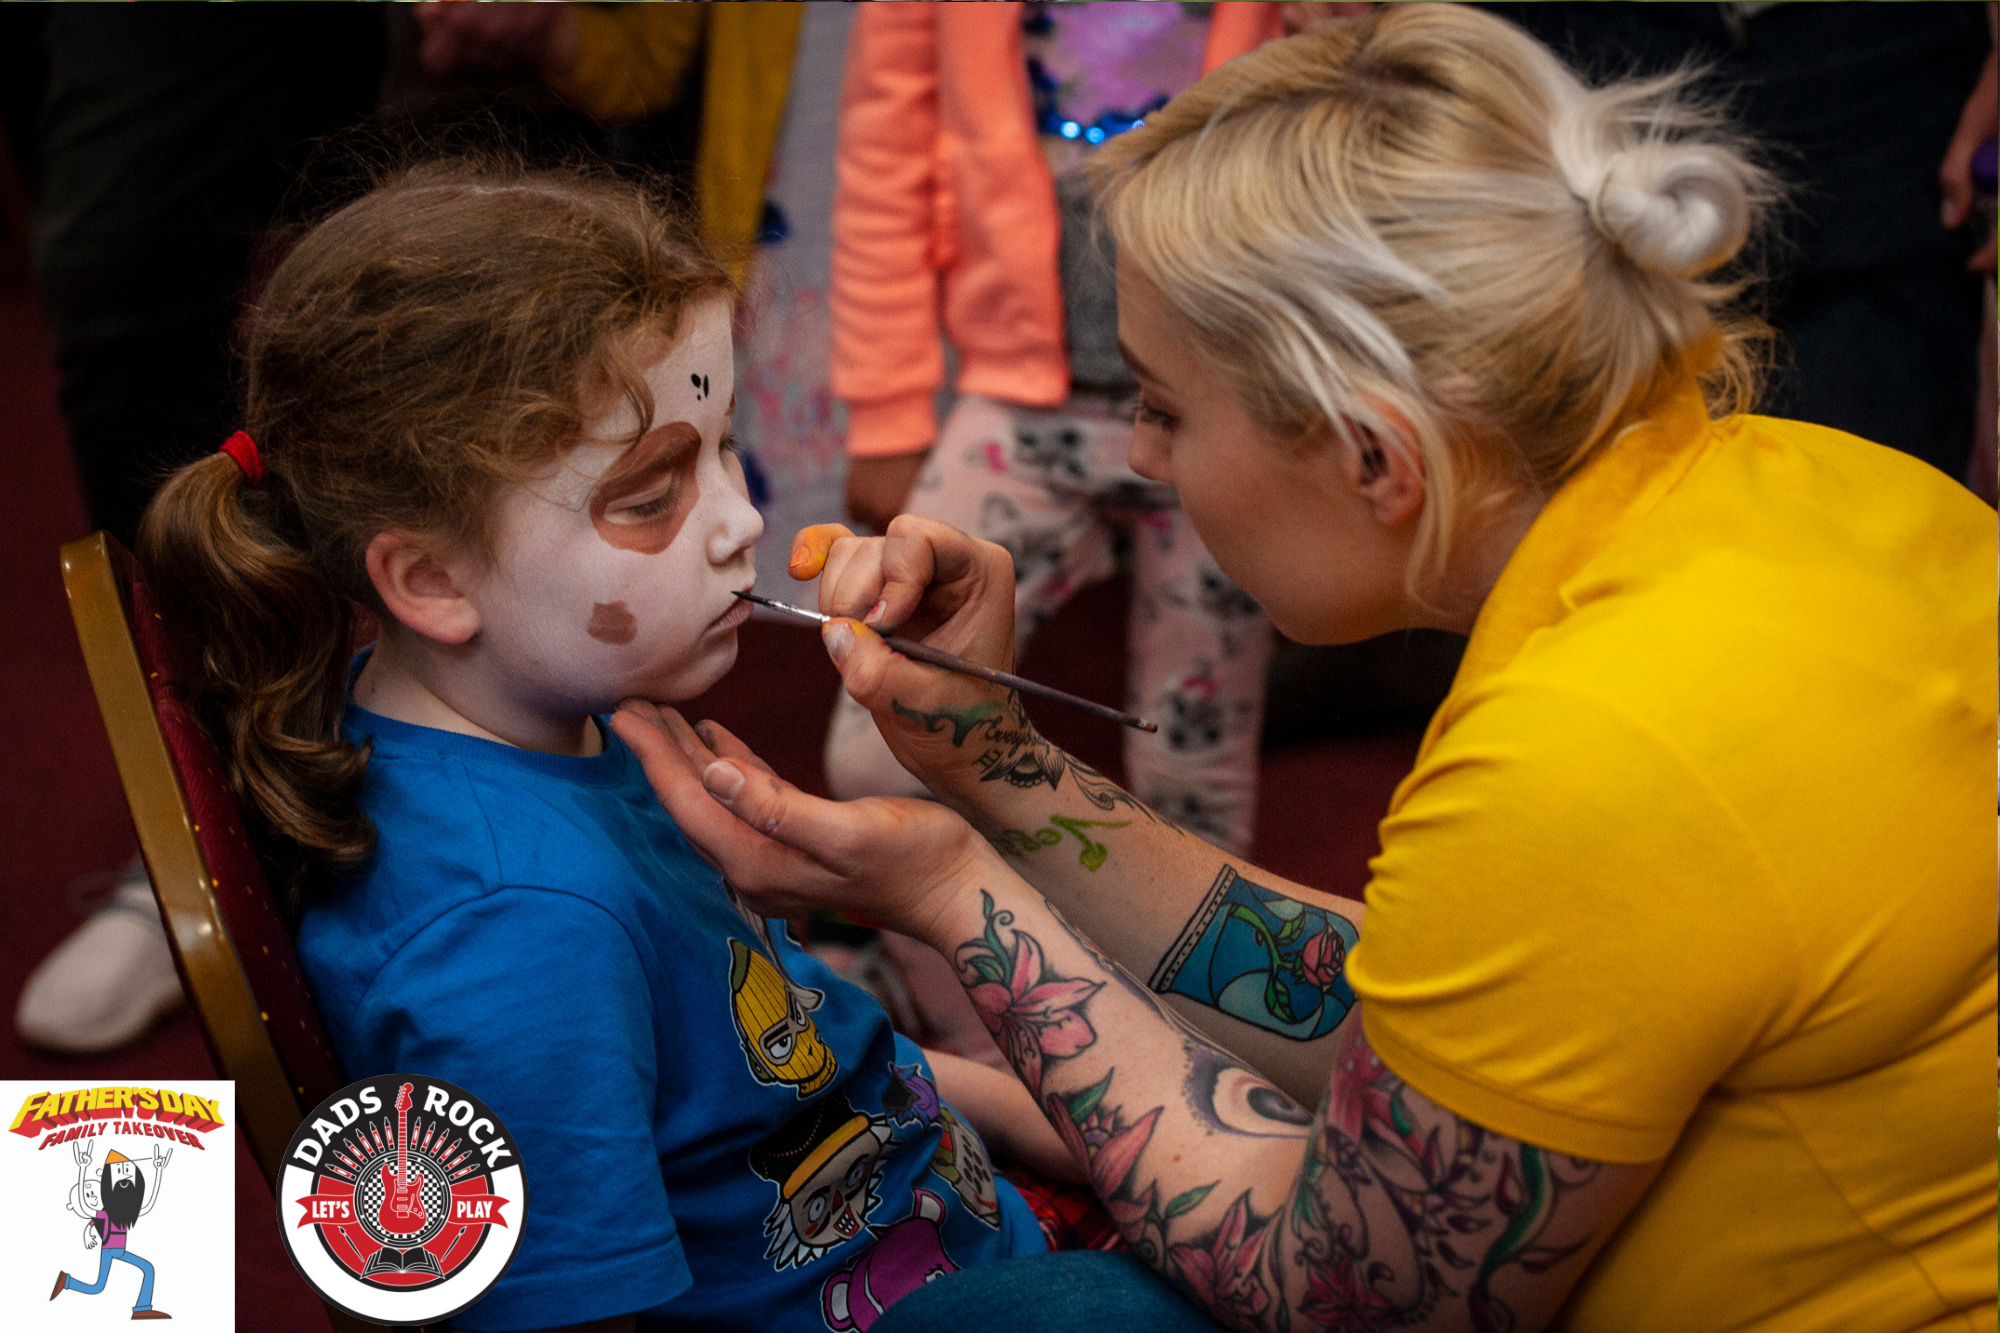 Plenty of painted faces were running around enjoying everything on offer. Thanks to  Pure Brilliant Events .